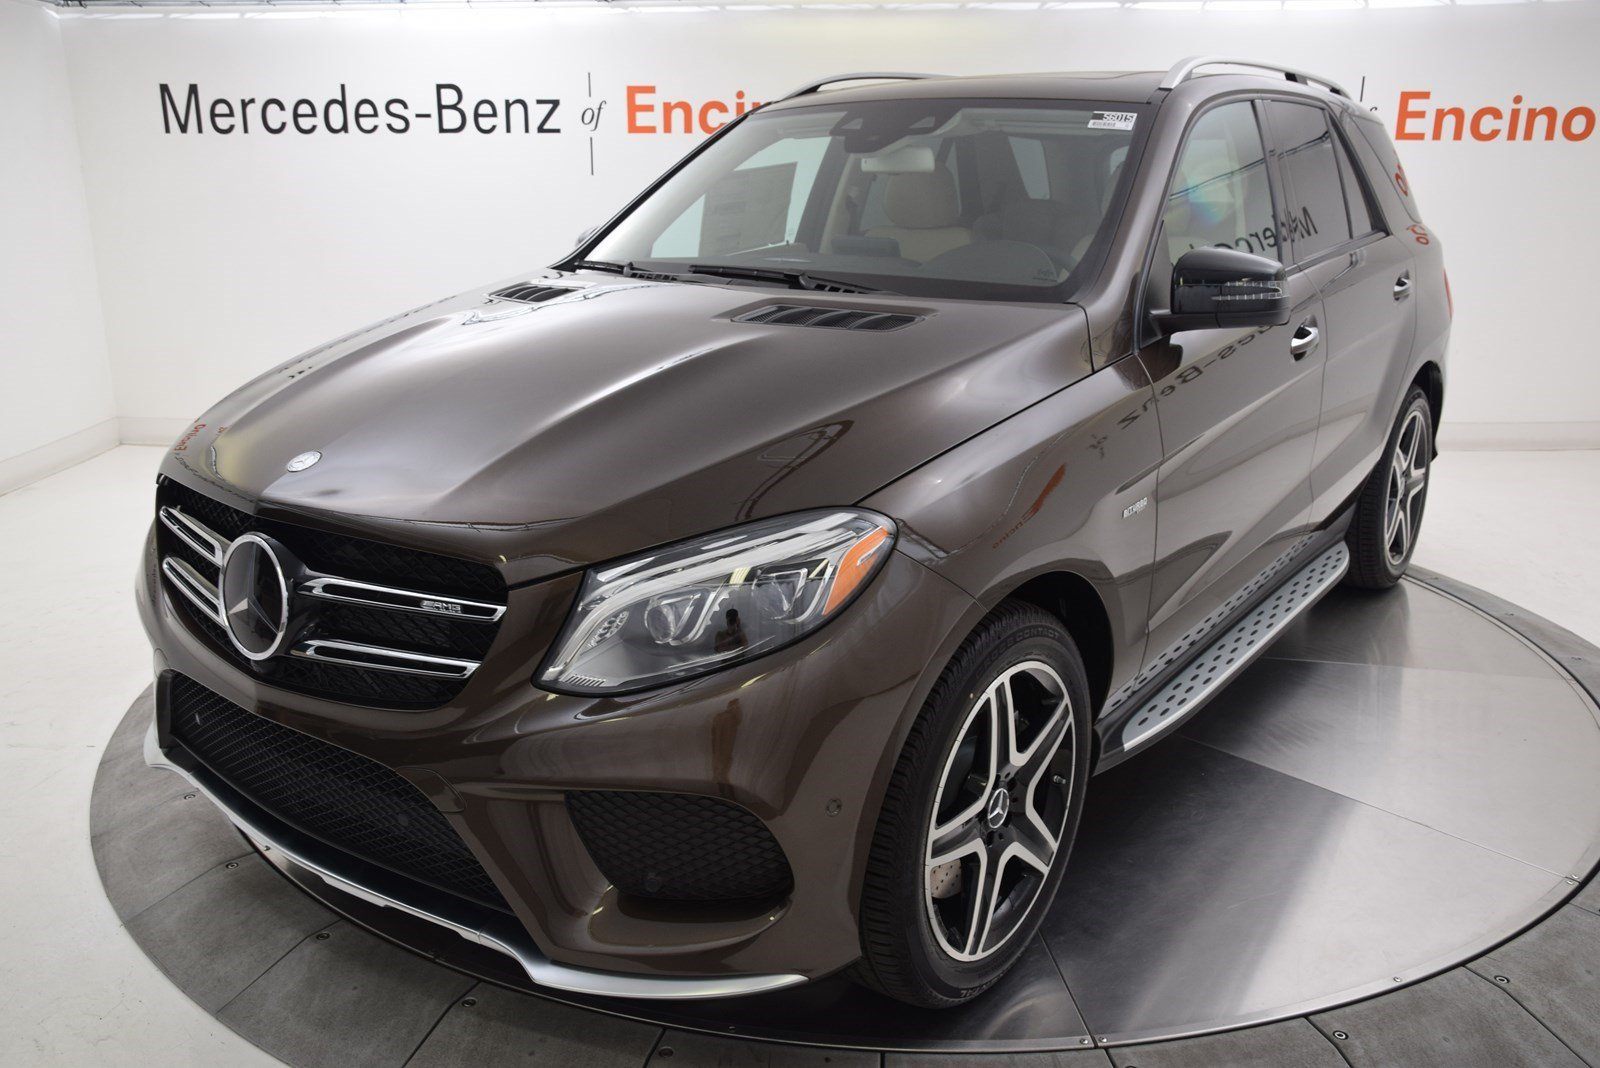 New 2017 mercedes benz gle gle 43 amg suv suv in encino for Mercedes benz amg suv price